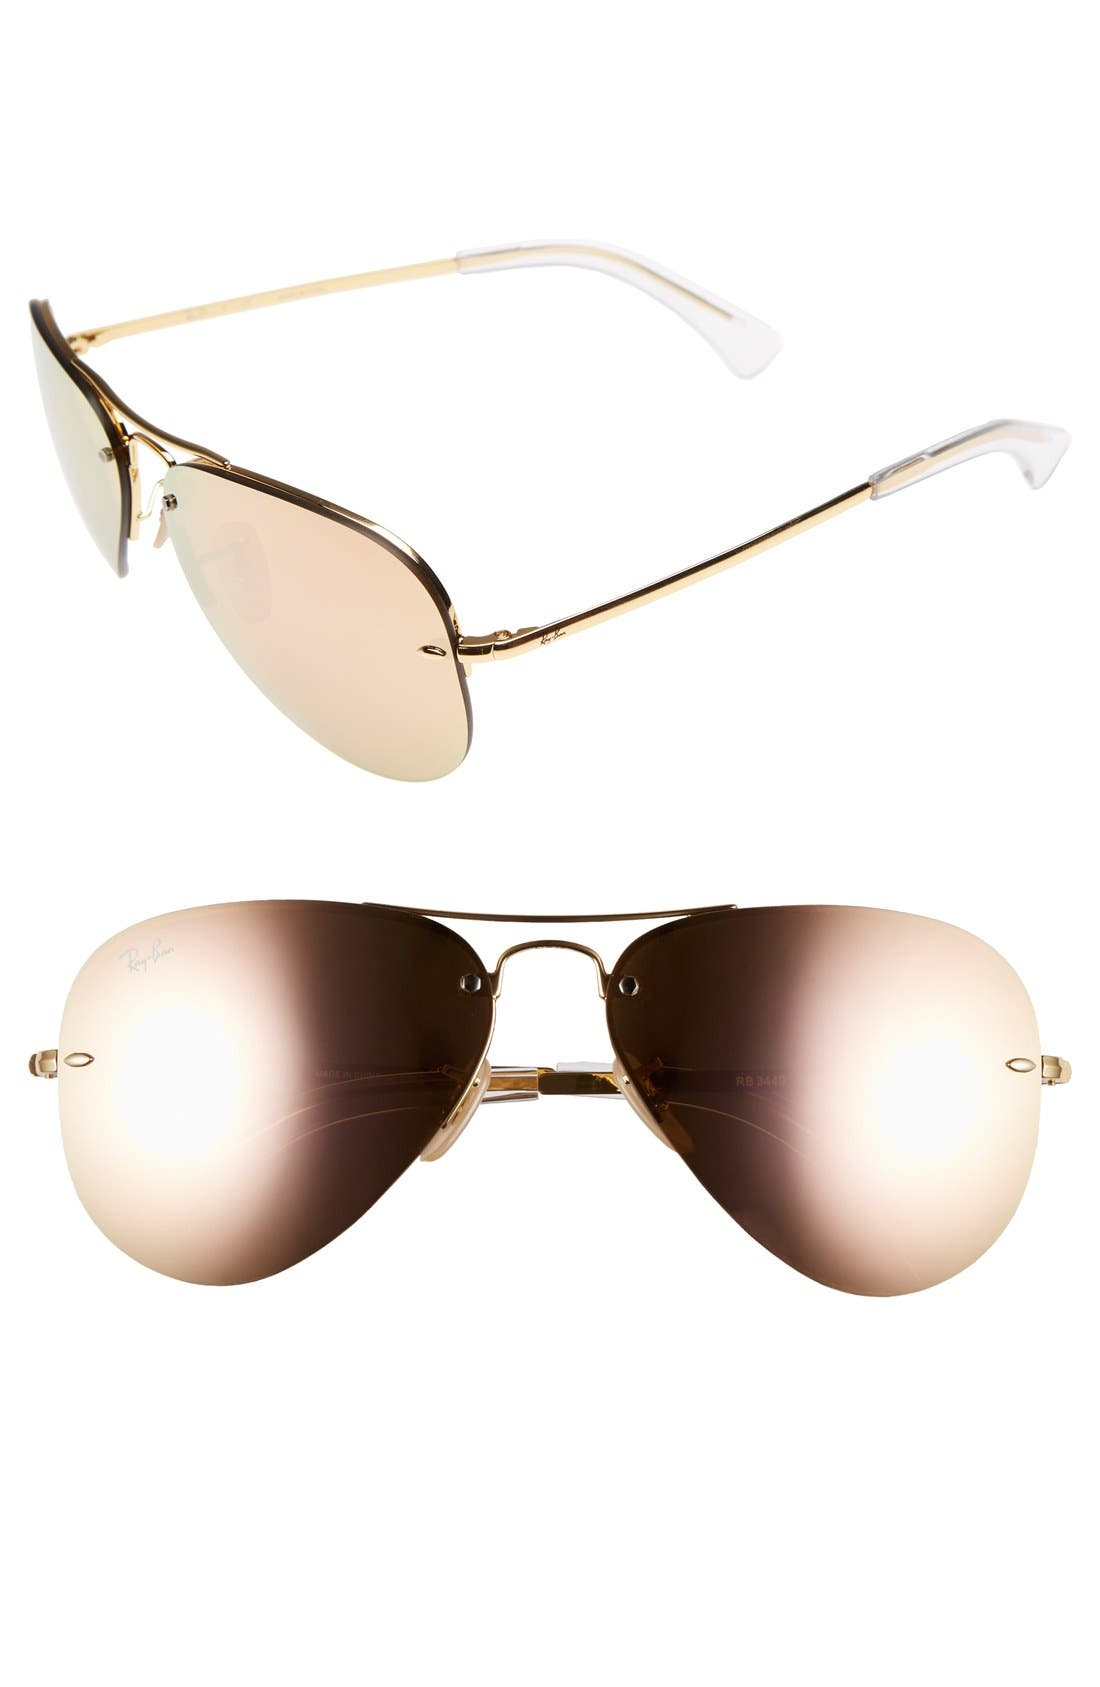 Highstreet 59mm Semi Rimless Aviator Sunglasses,                         Main,                         color, BROWN/ PINK